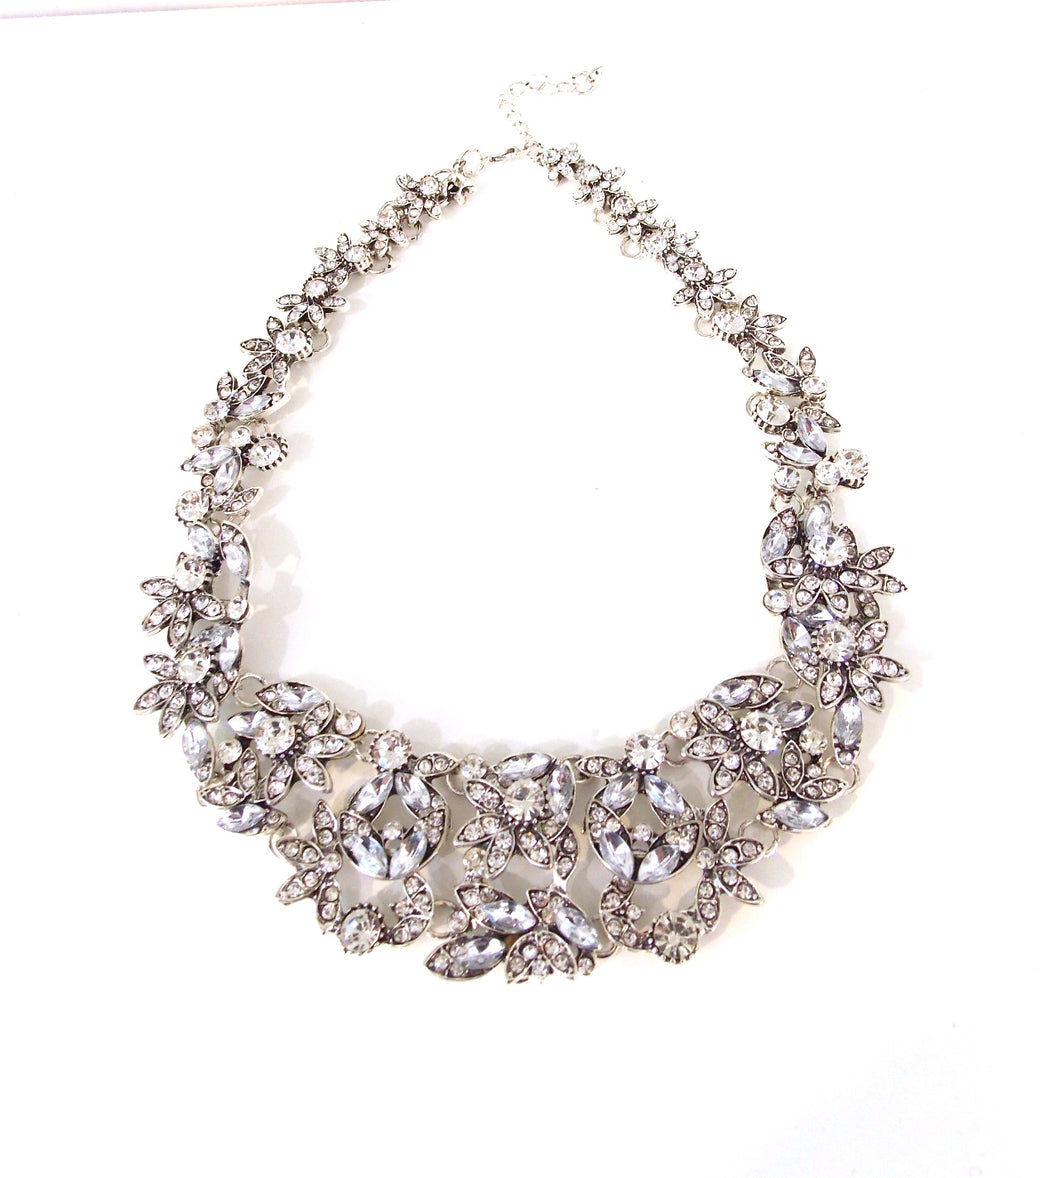 Silver Crystal Rhinestone Necklace